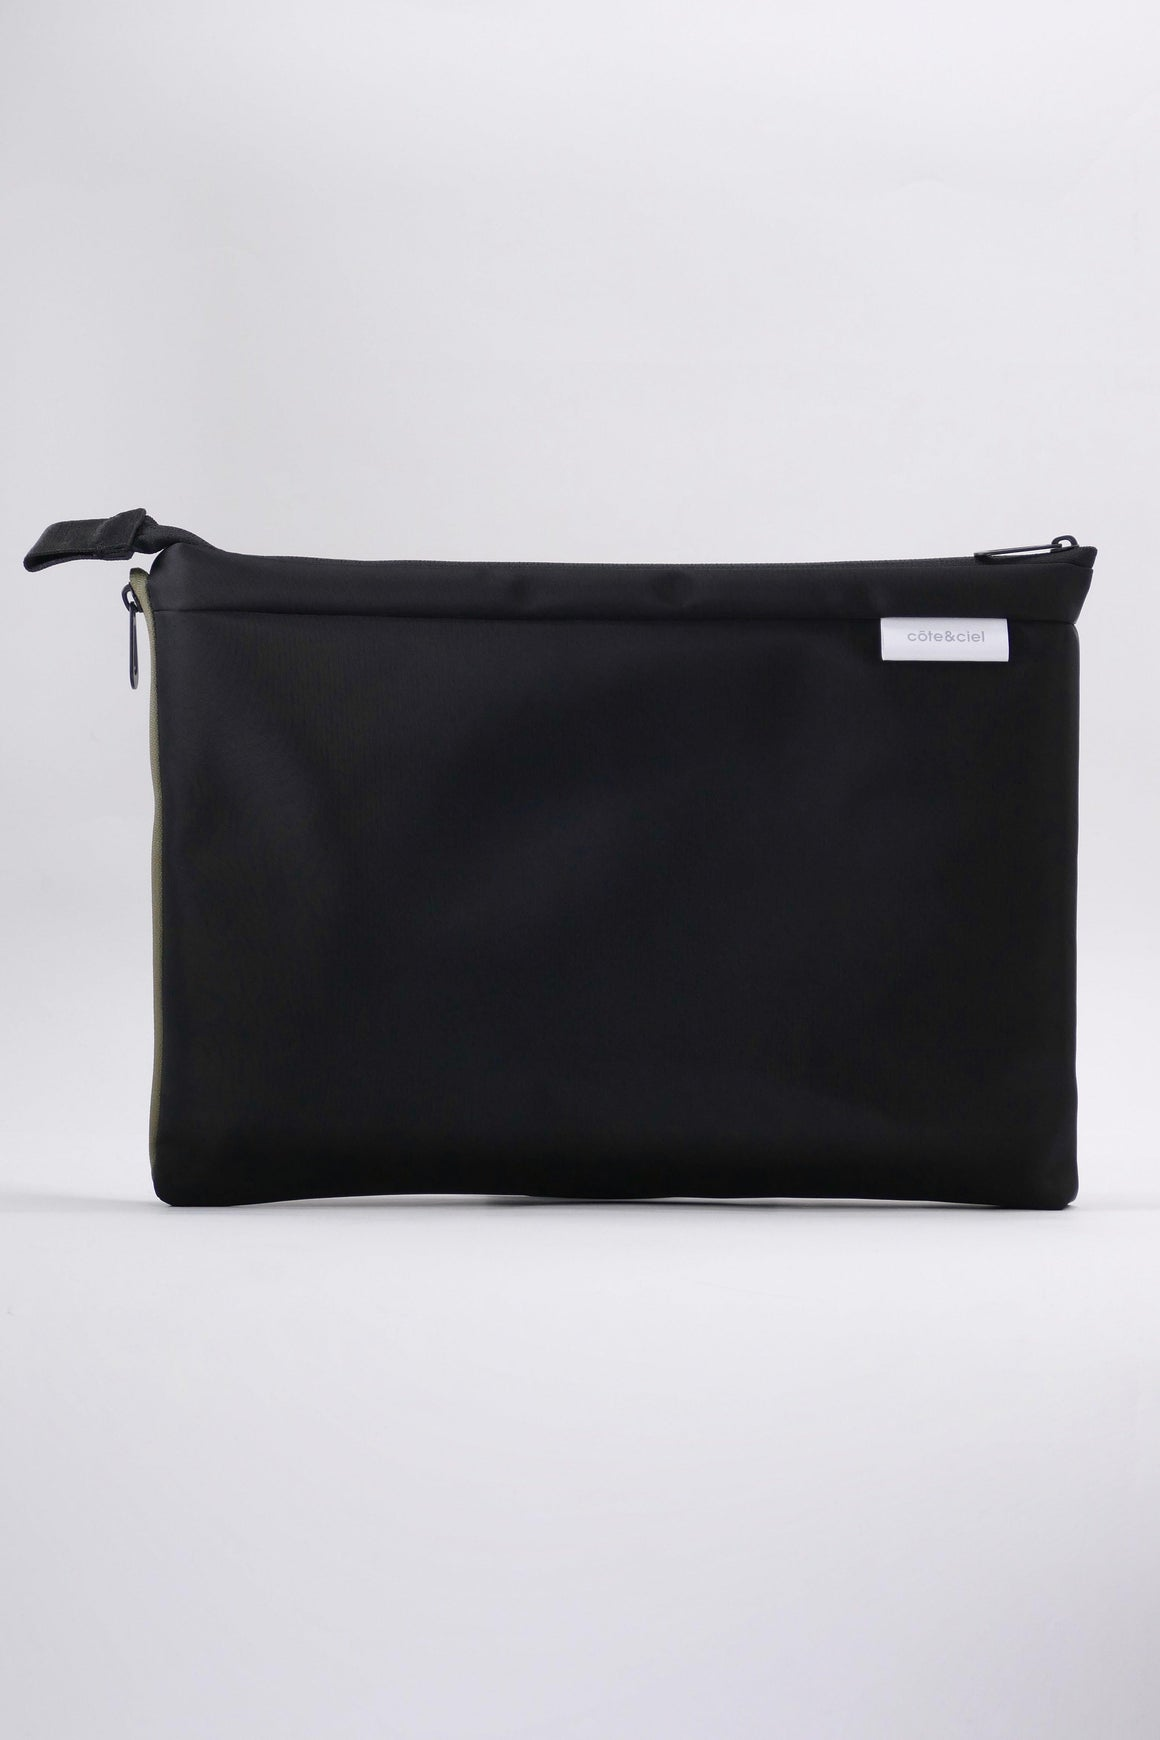 Cote & Ciel Zaan Bag Black